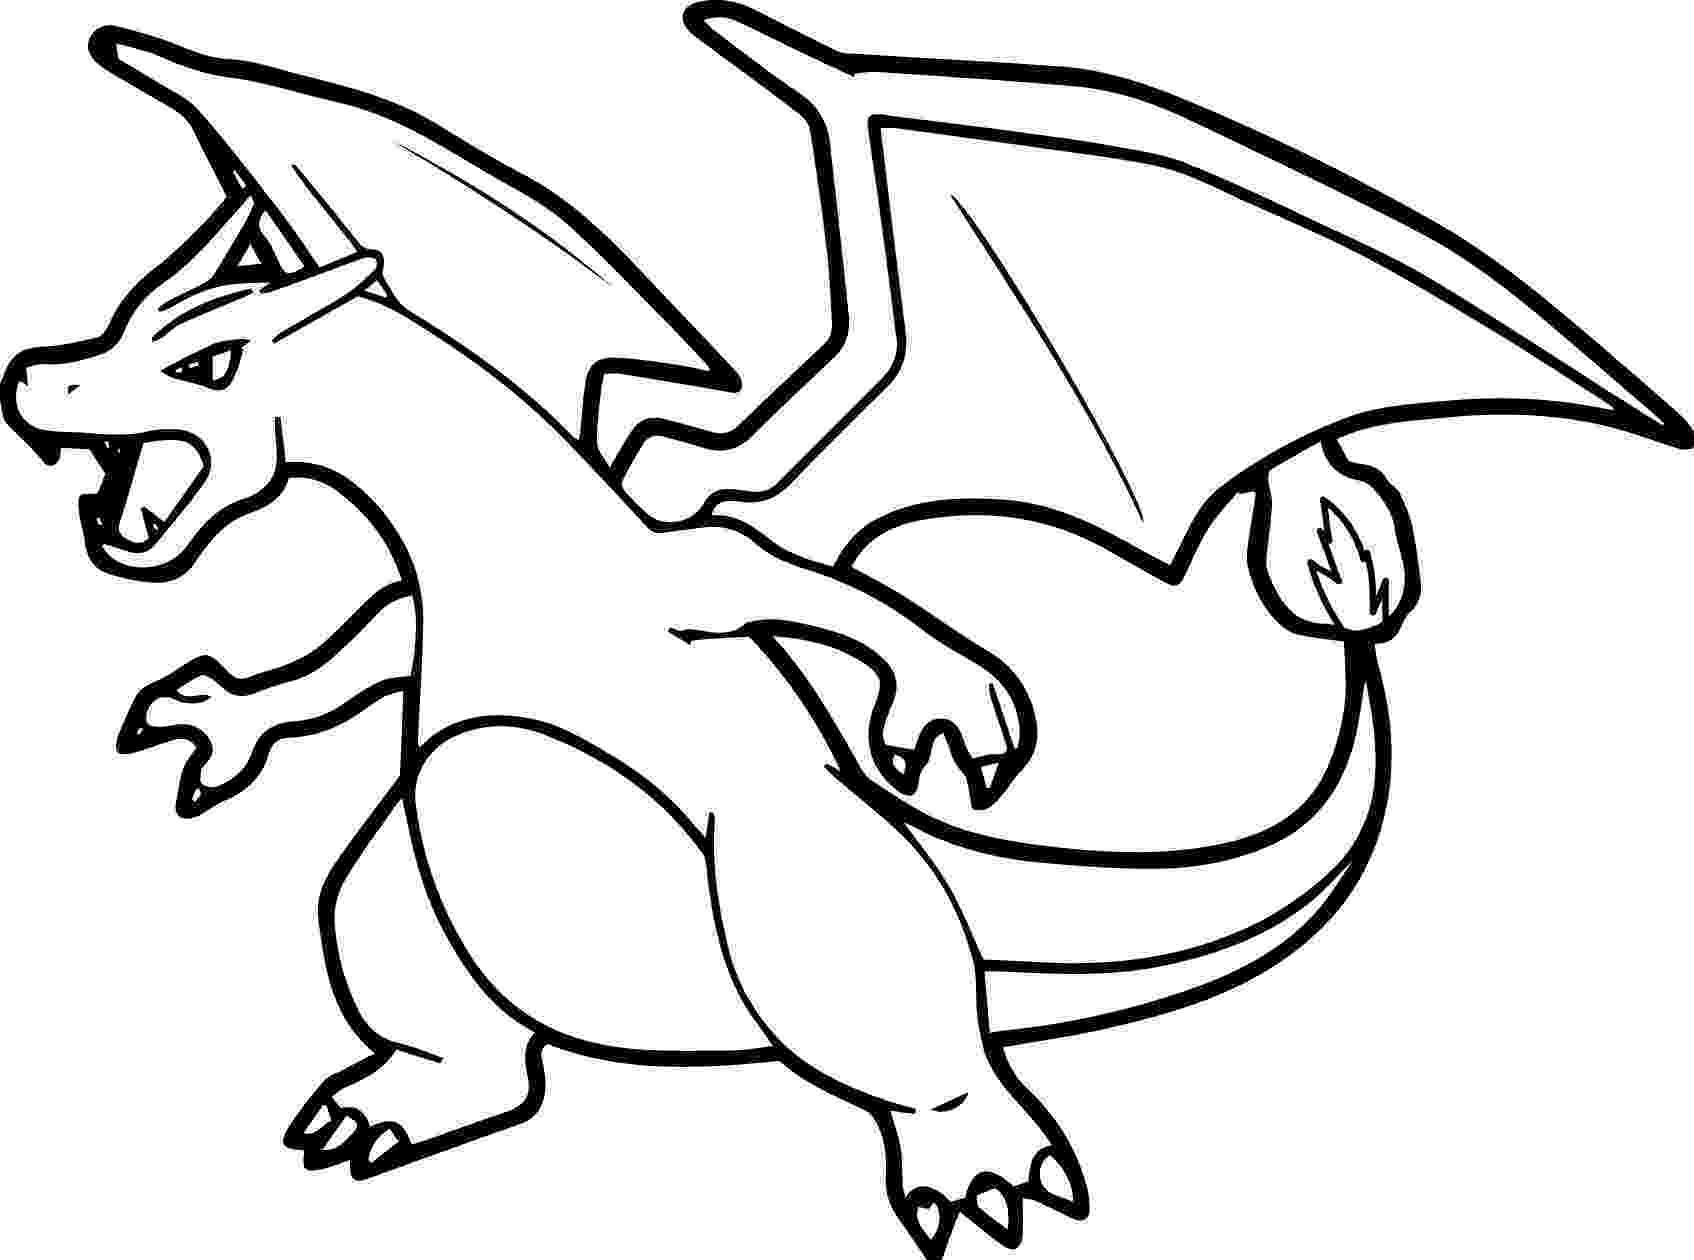 pokeman coloring pages pokemon coloring pages quot pikachu coloring pages pokeman